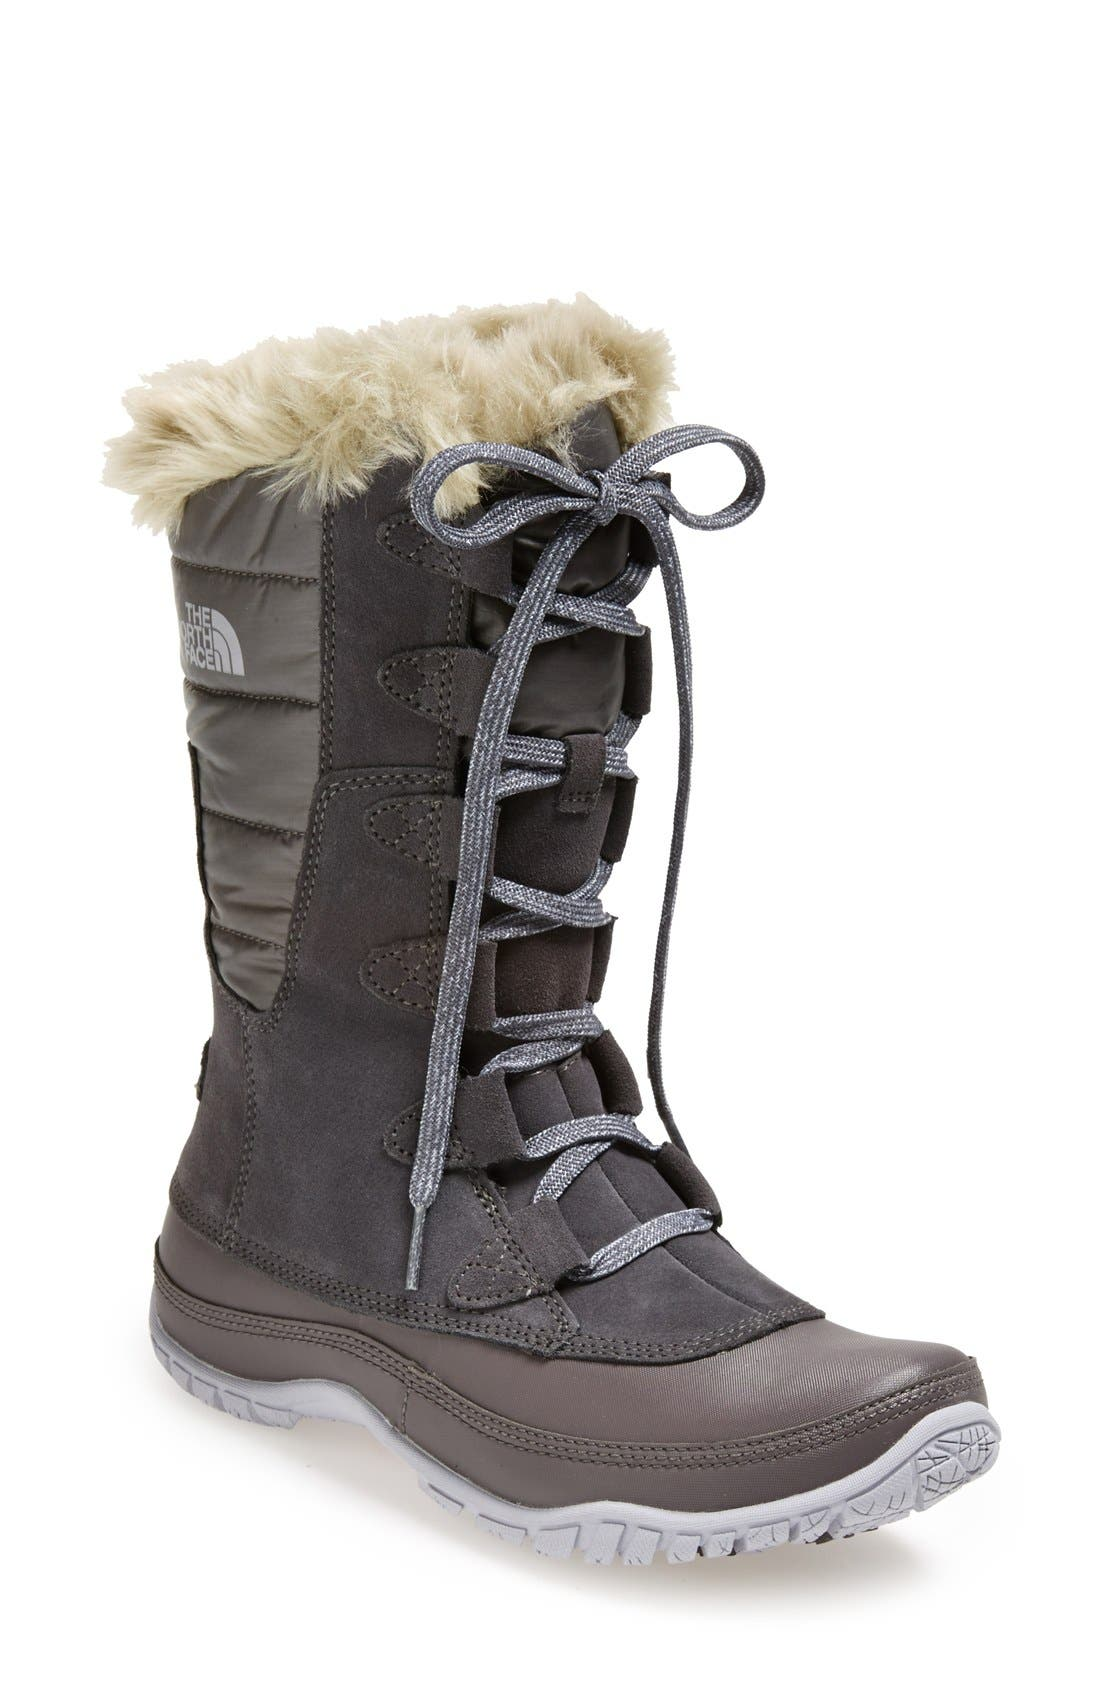 Alternate Image 1 Selected - The North Face 'Nuptse Purna' Waterproof PrimaLoft® Eco Insulated Winter Boot (Women)